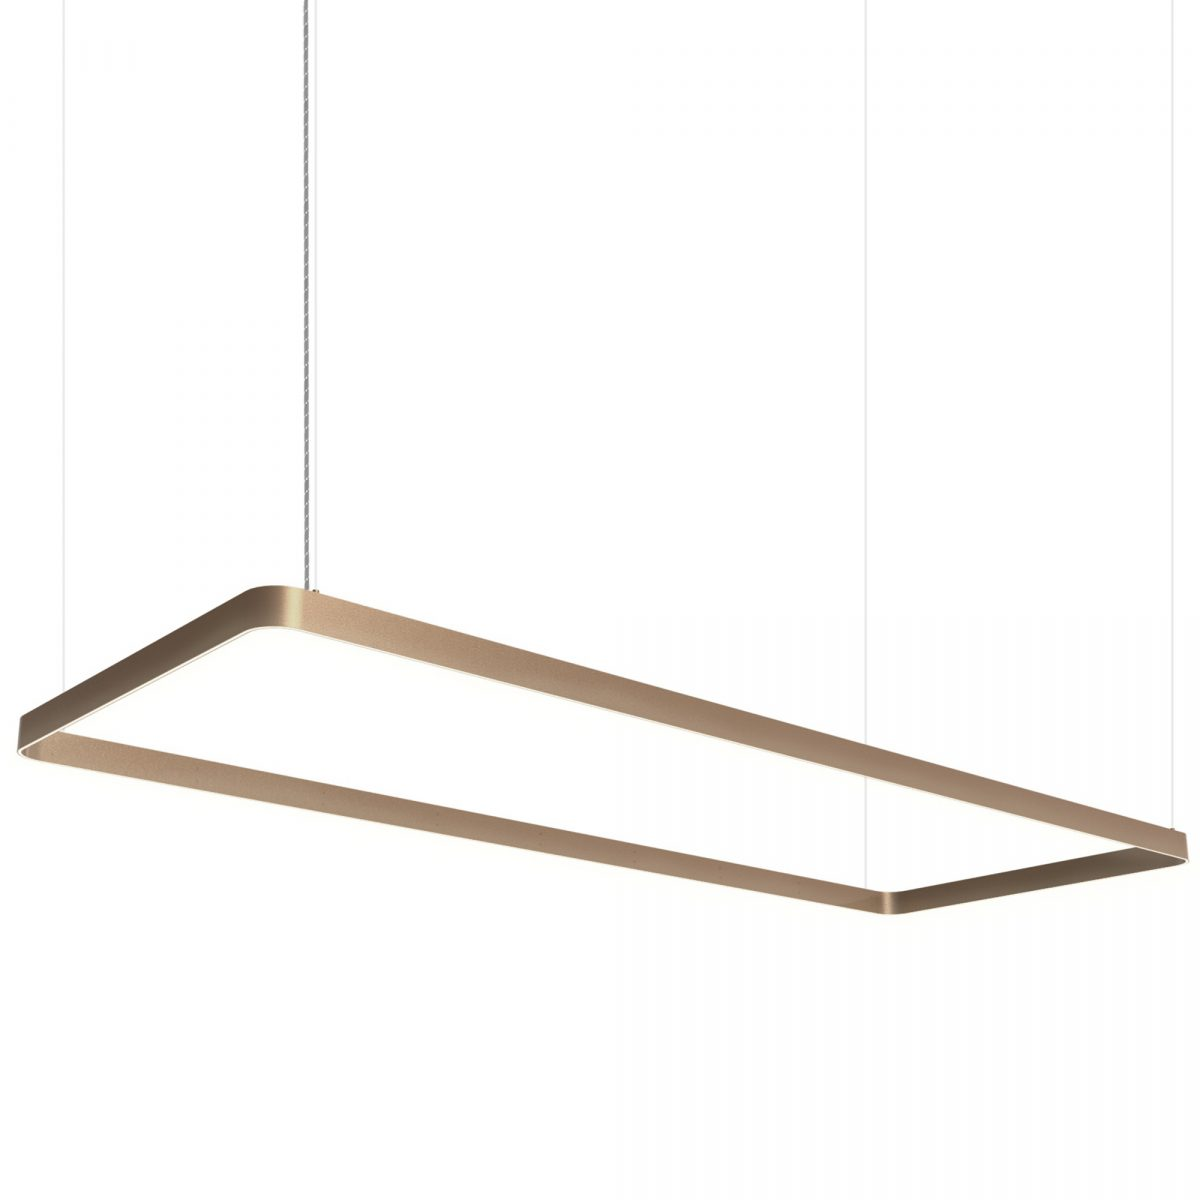 JSPR Eden 75×200 Bronze Rectangle